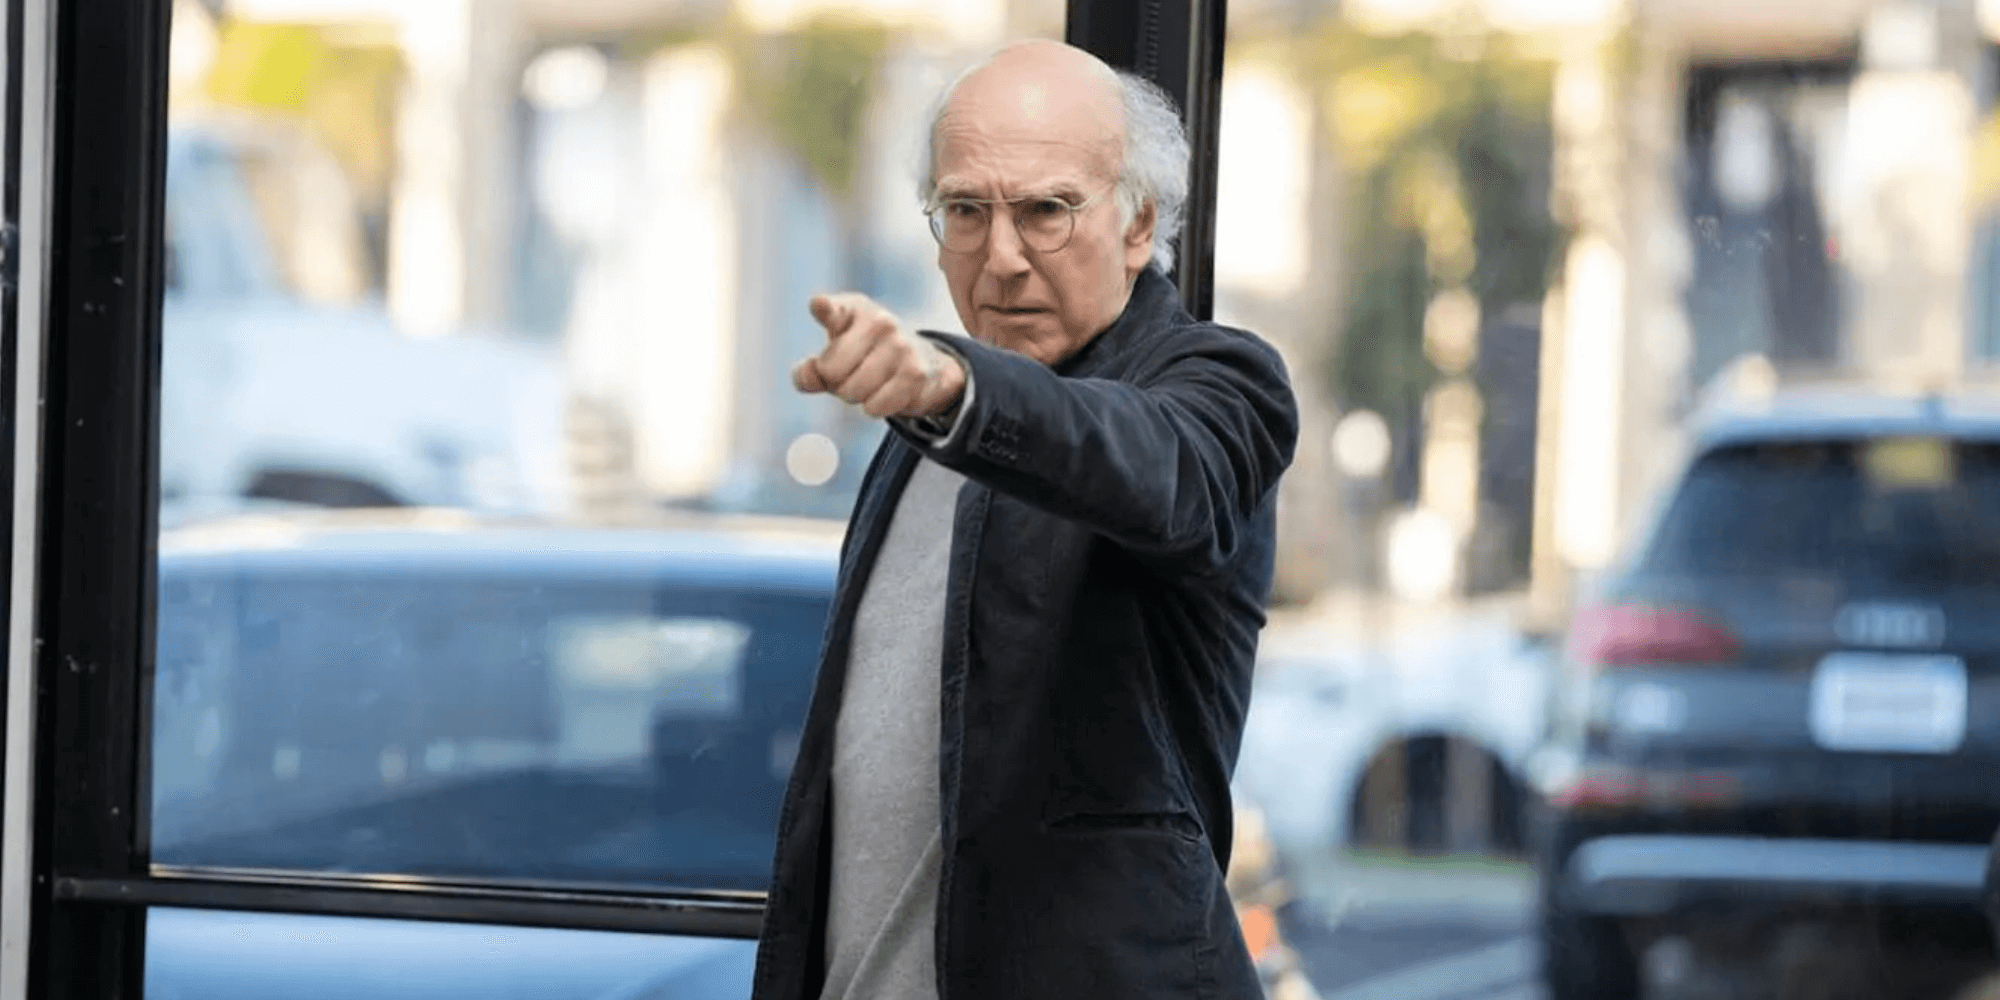 HBO's 'Curb Your Enthusiasm' returns from a 2-year break with brand new ways to make you cringe